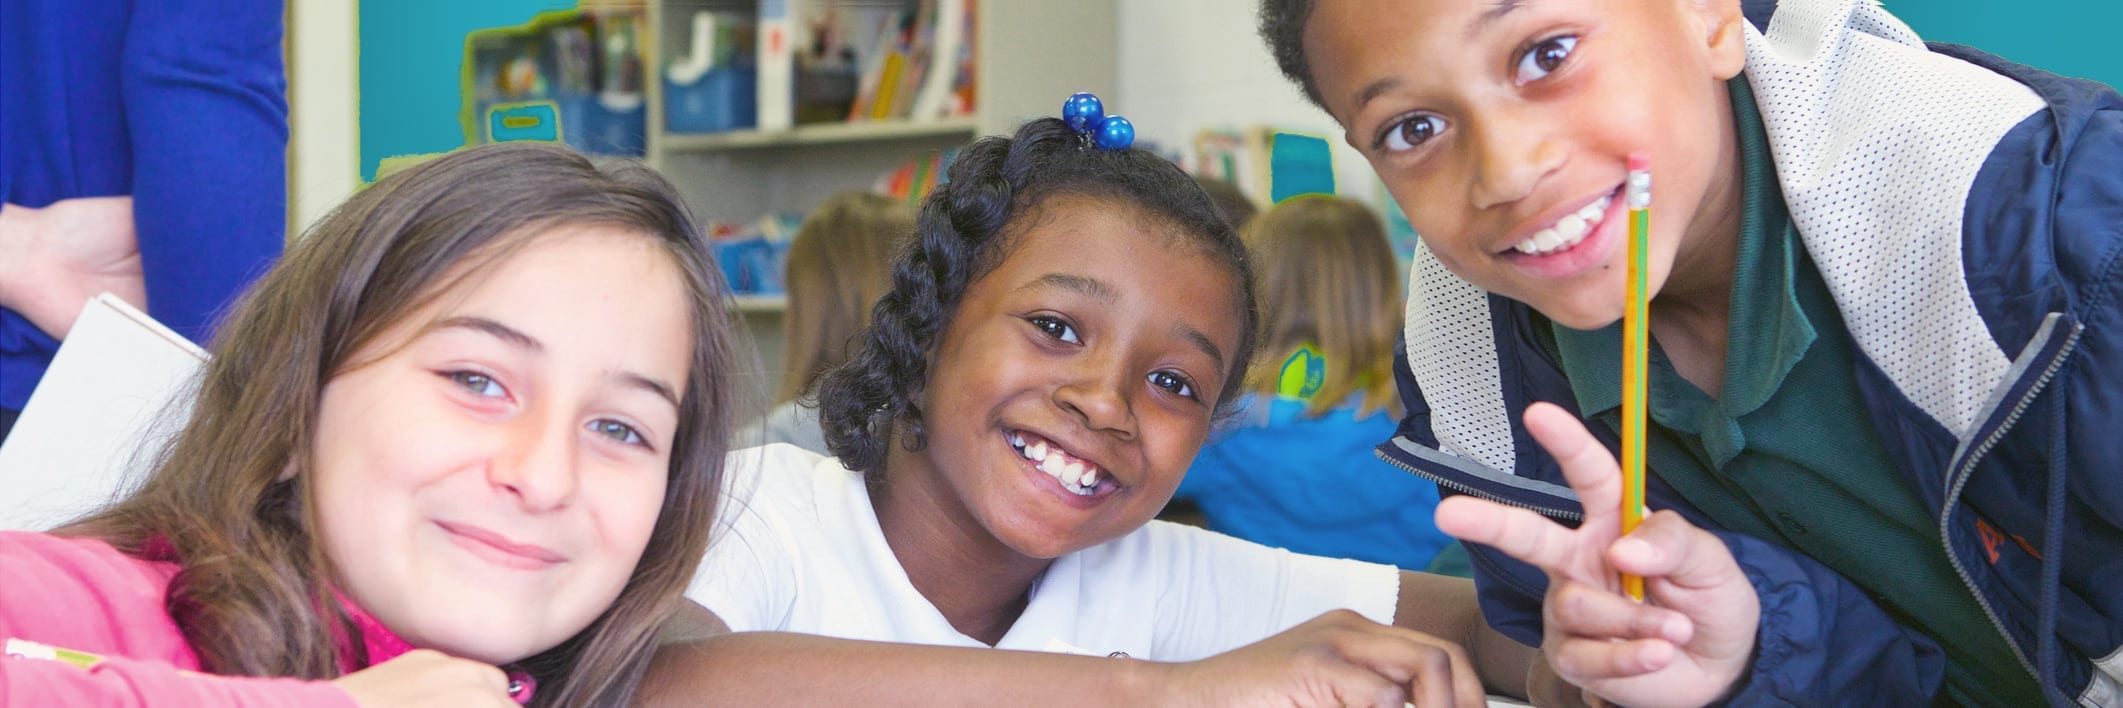 Social Emotional Learning programs for elementary schools, middle schools and high schools.